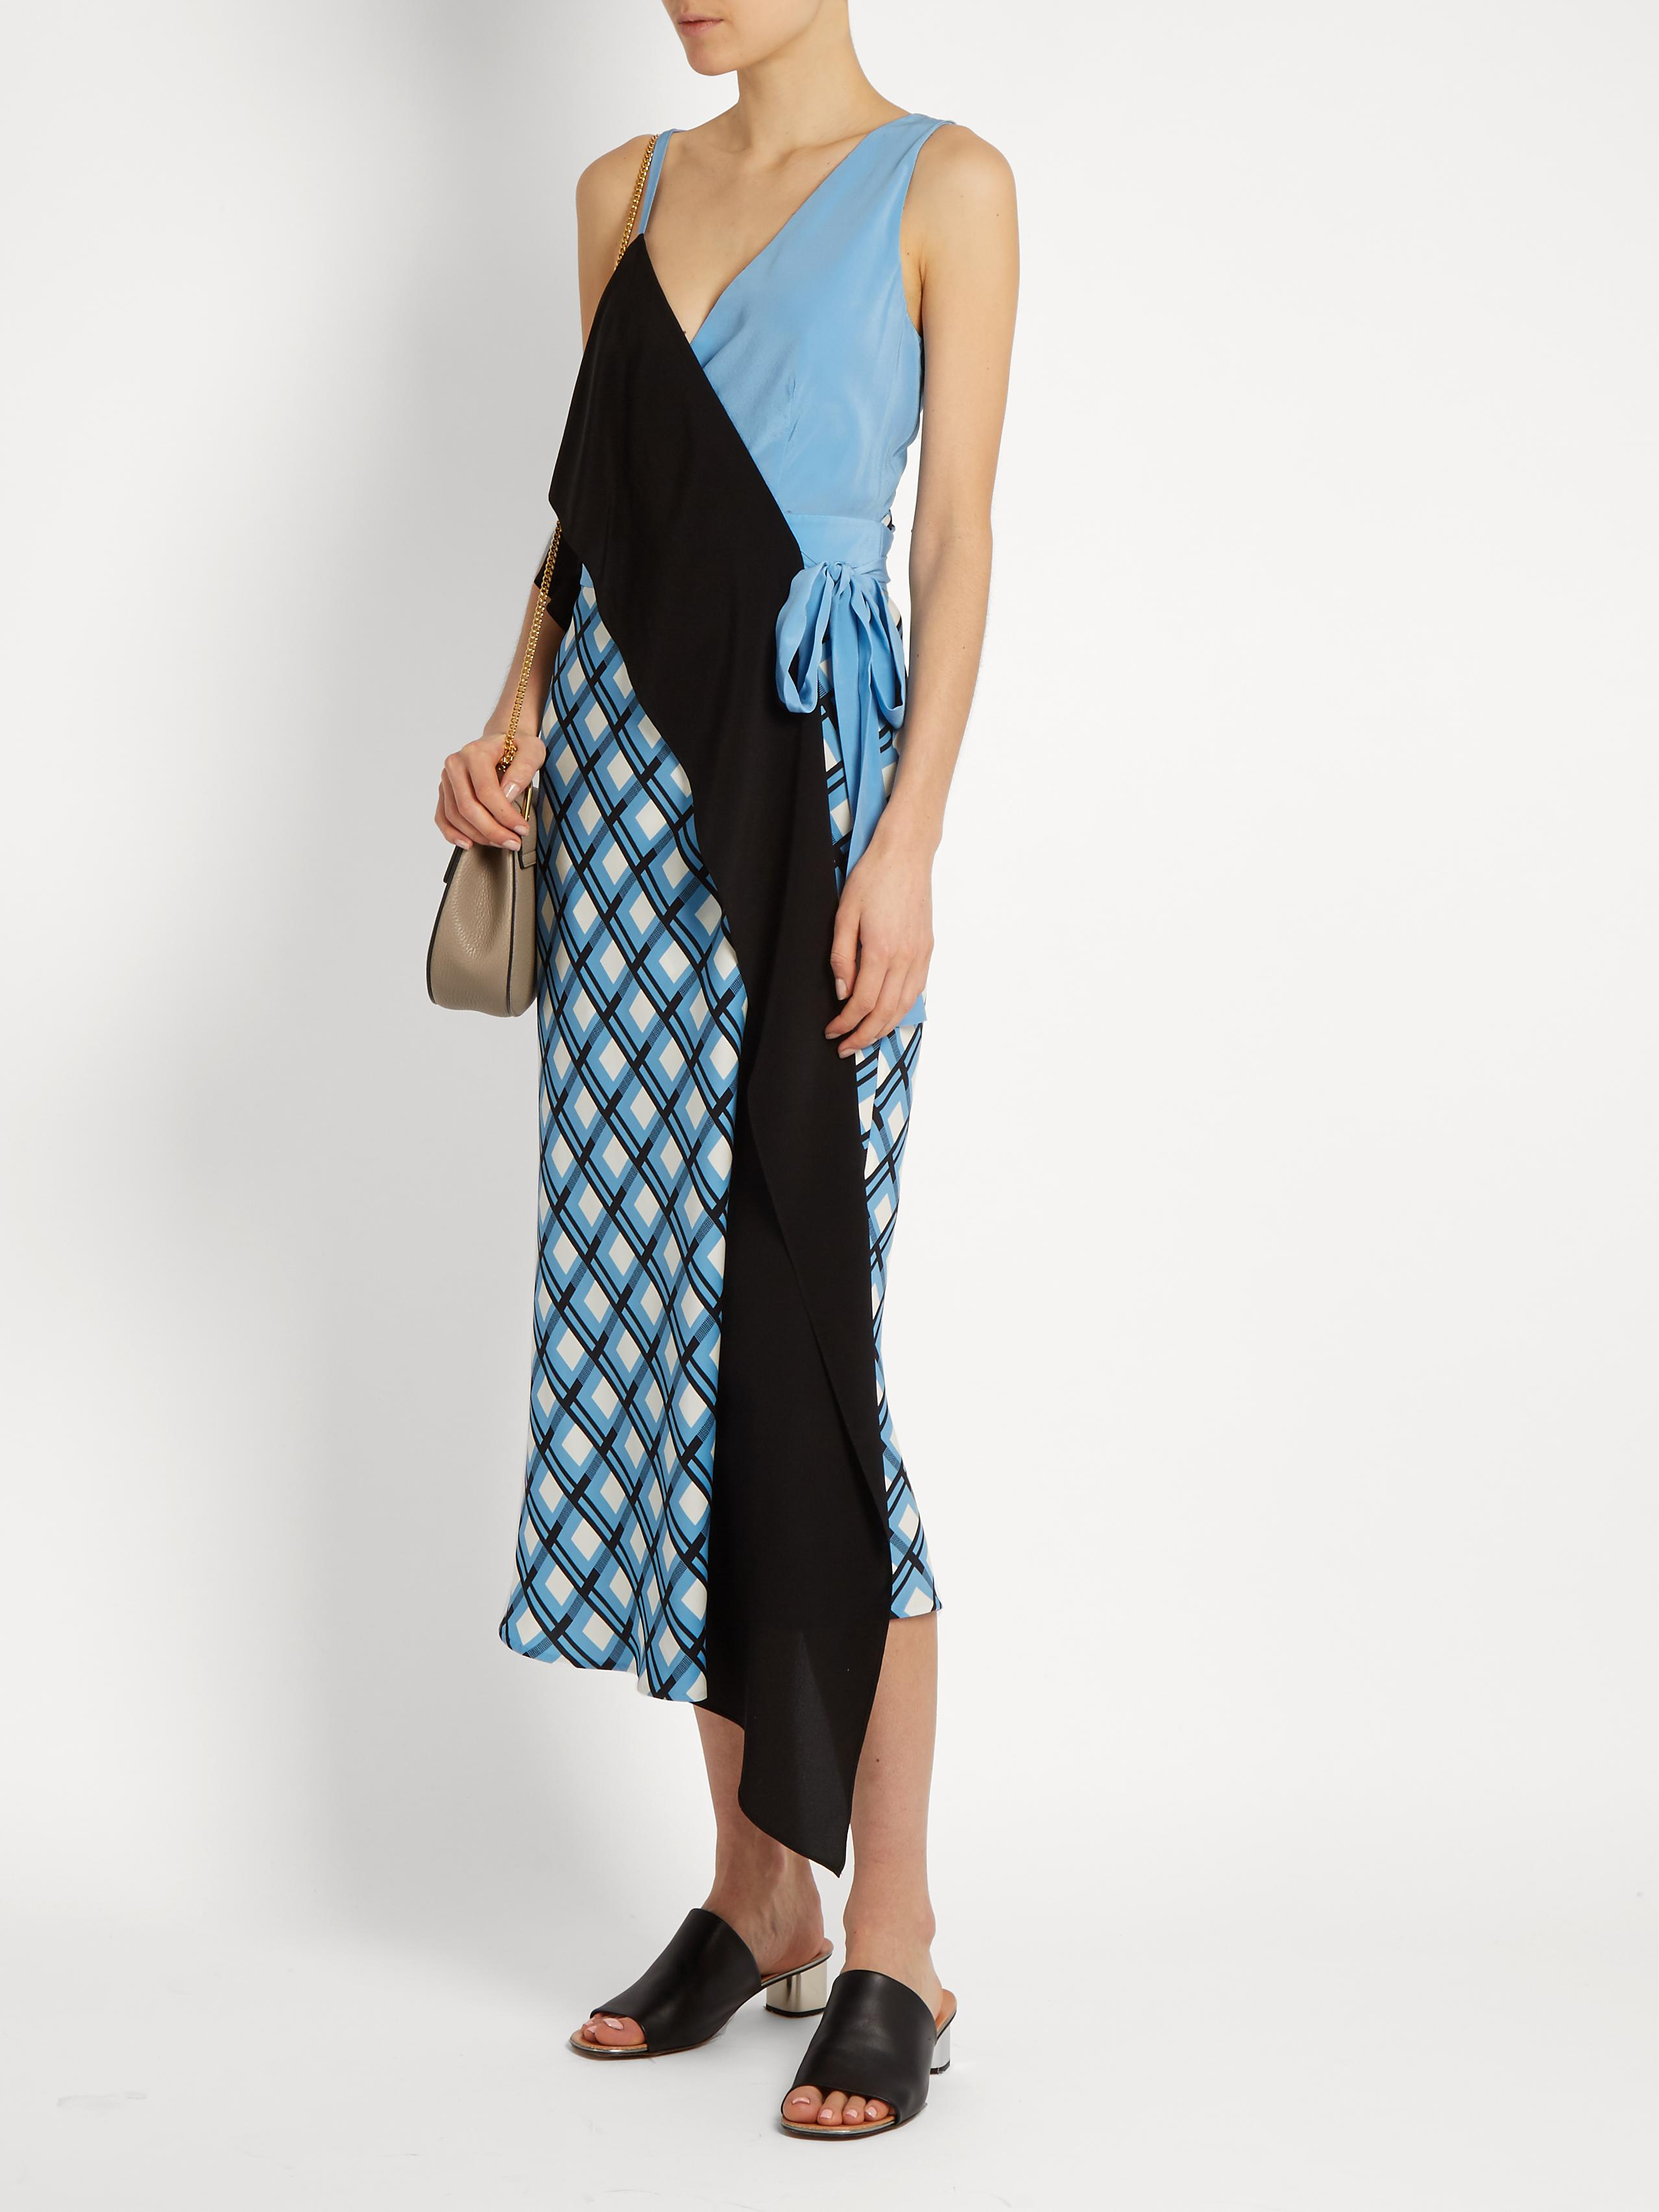 Exclusive Sale Online Footlocker Cheap Online Contrast-panel silk-blend dress Diane Von Fürstenberg Many Kinds Of Online Cheap Sale Pay With Visa Buy Cheap Footlocker Pictures U3WwpwiQD